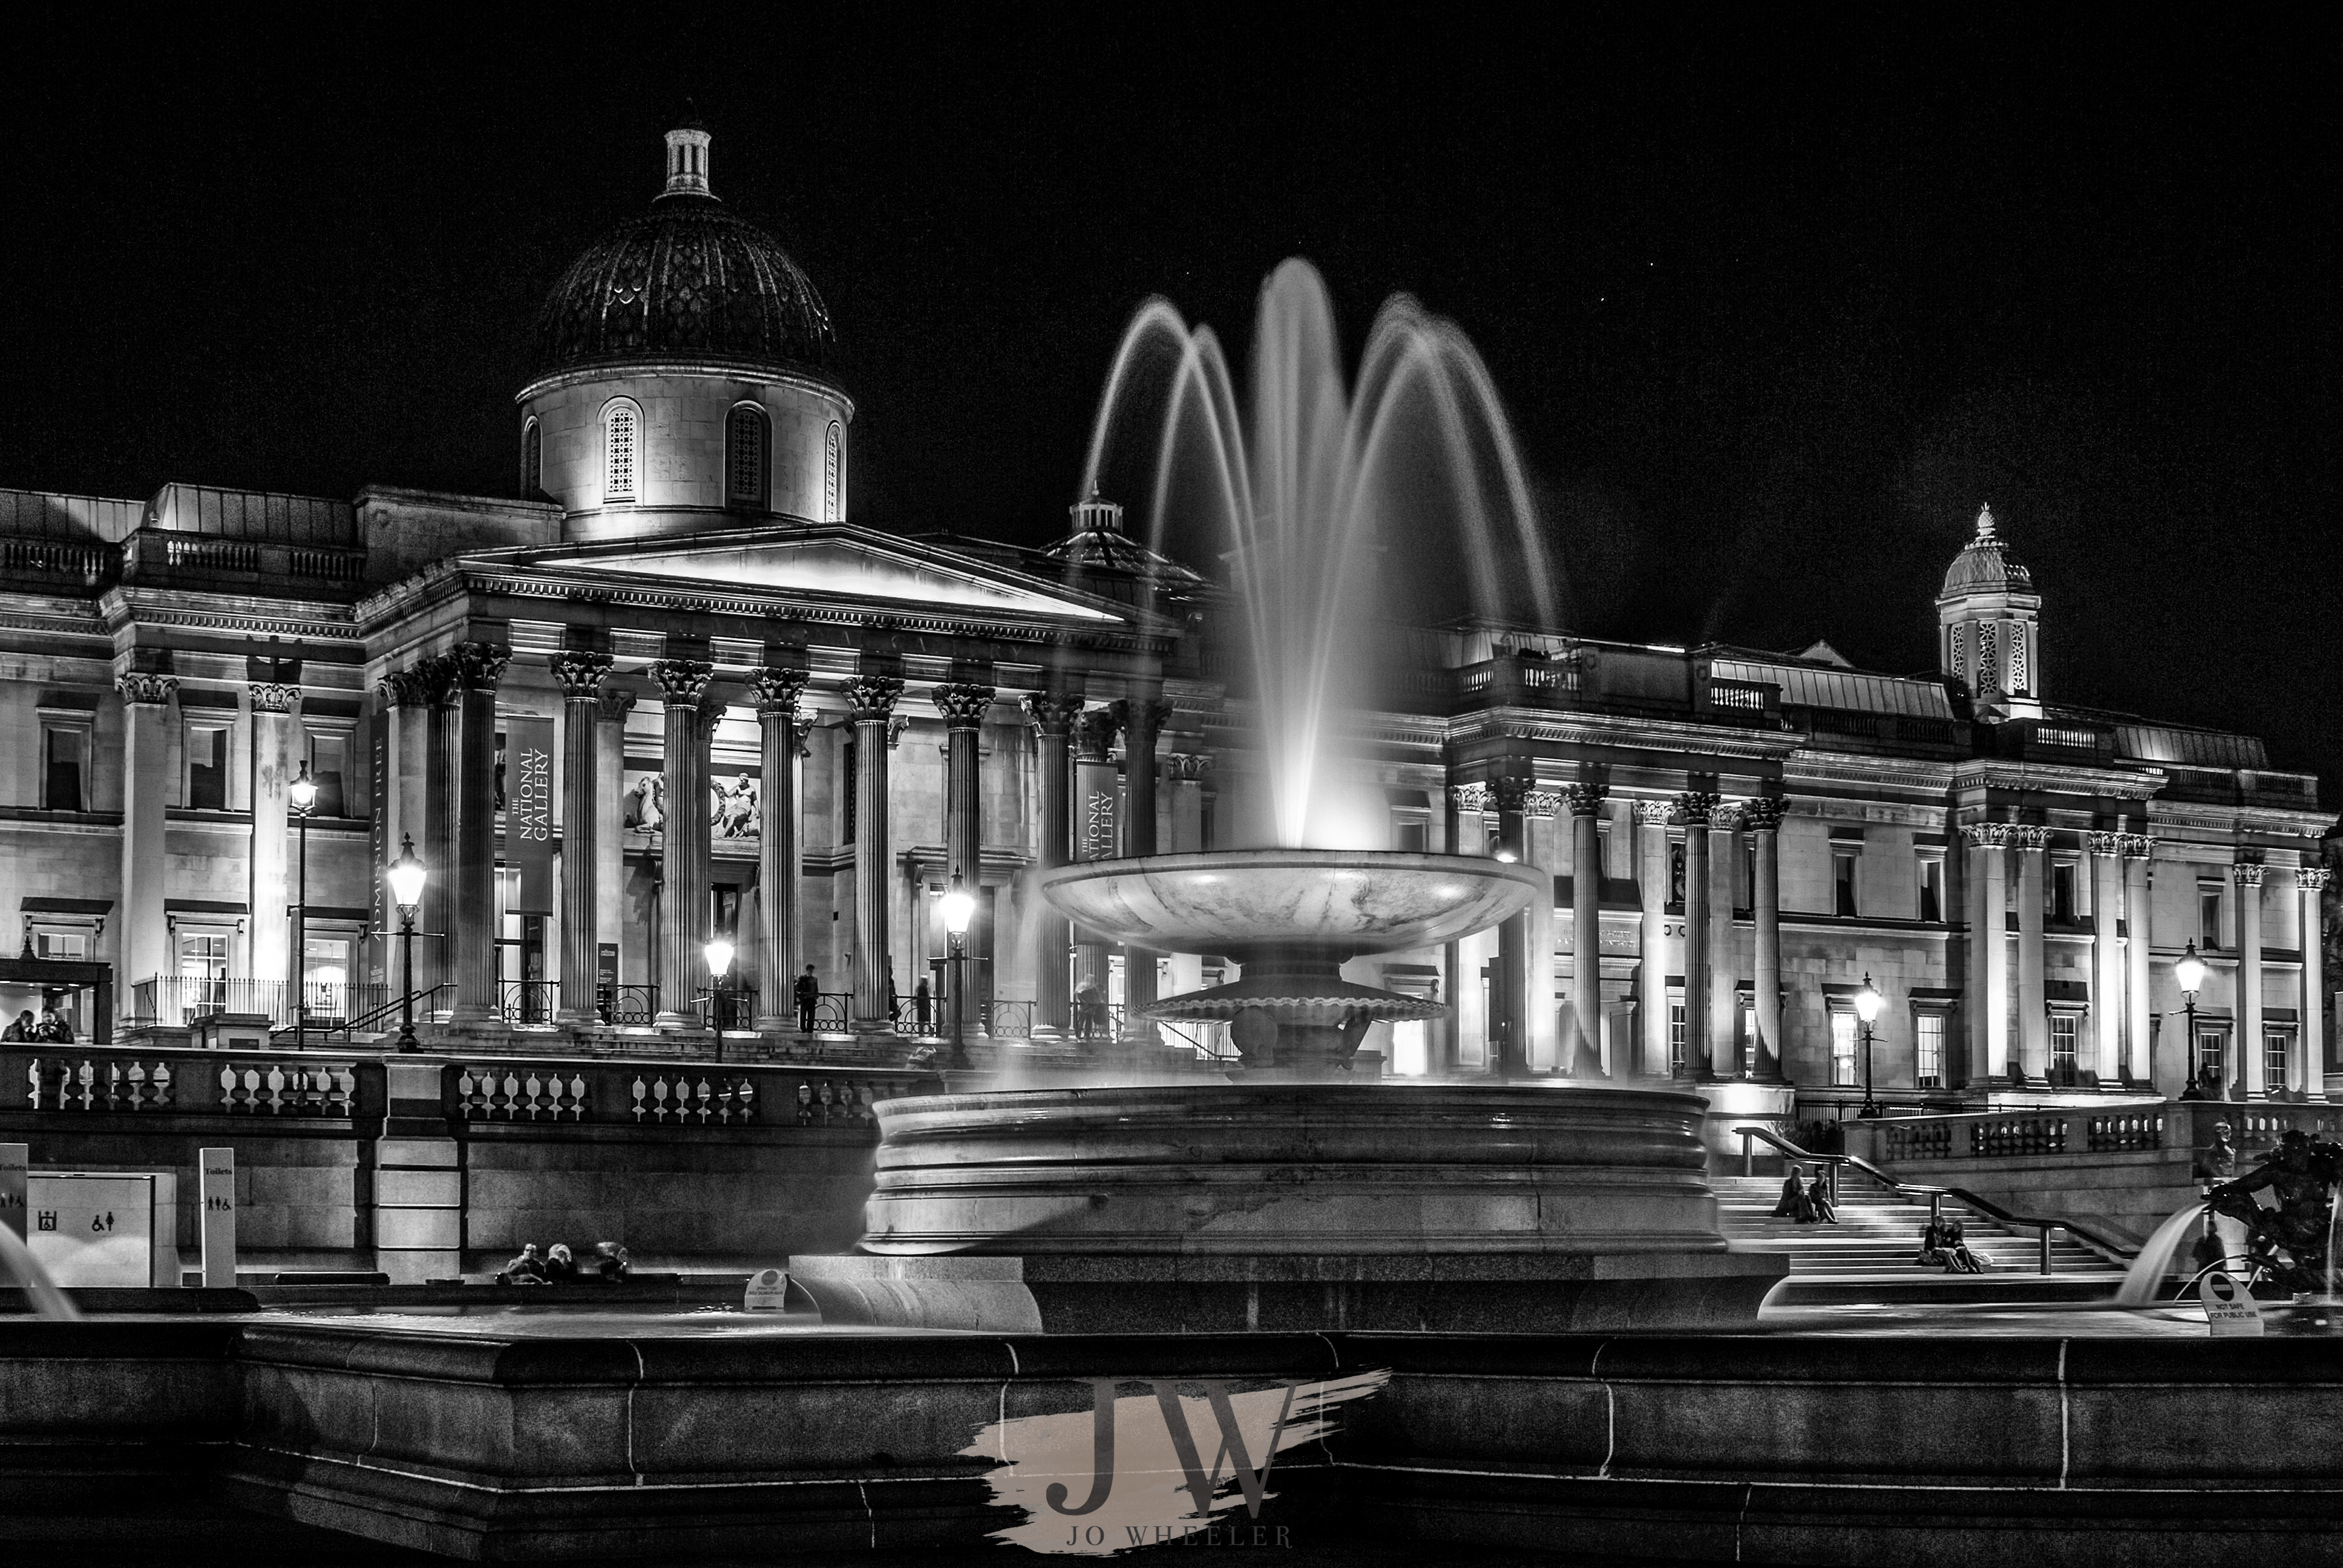 A view of the fountains in Trafalgar Square